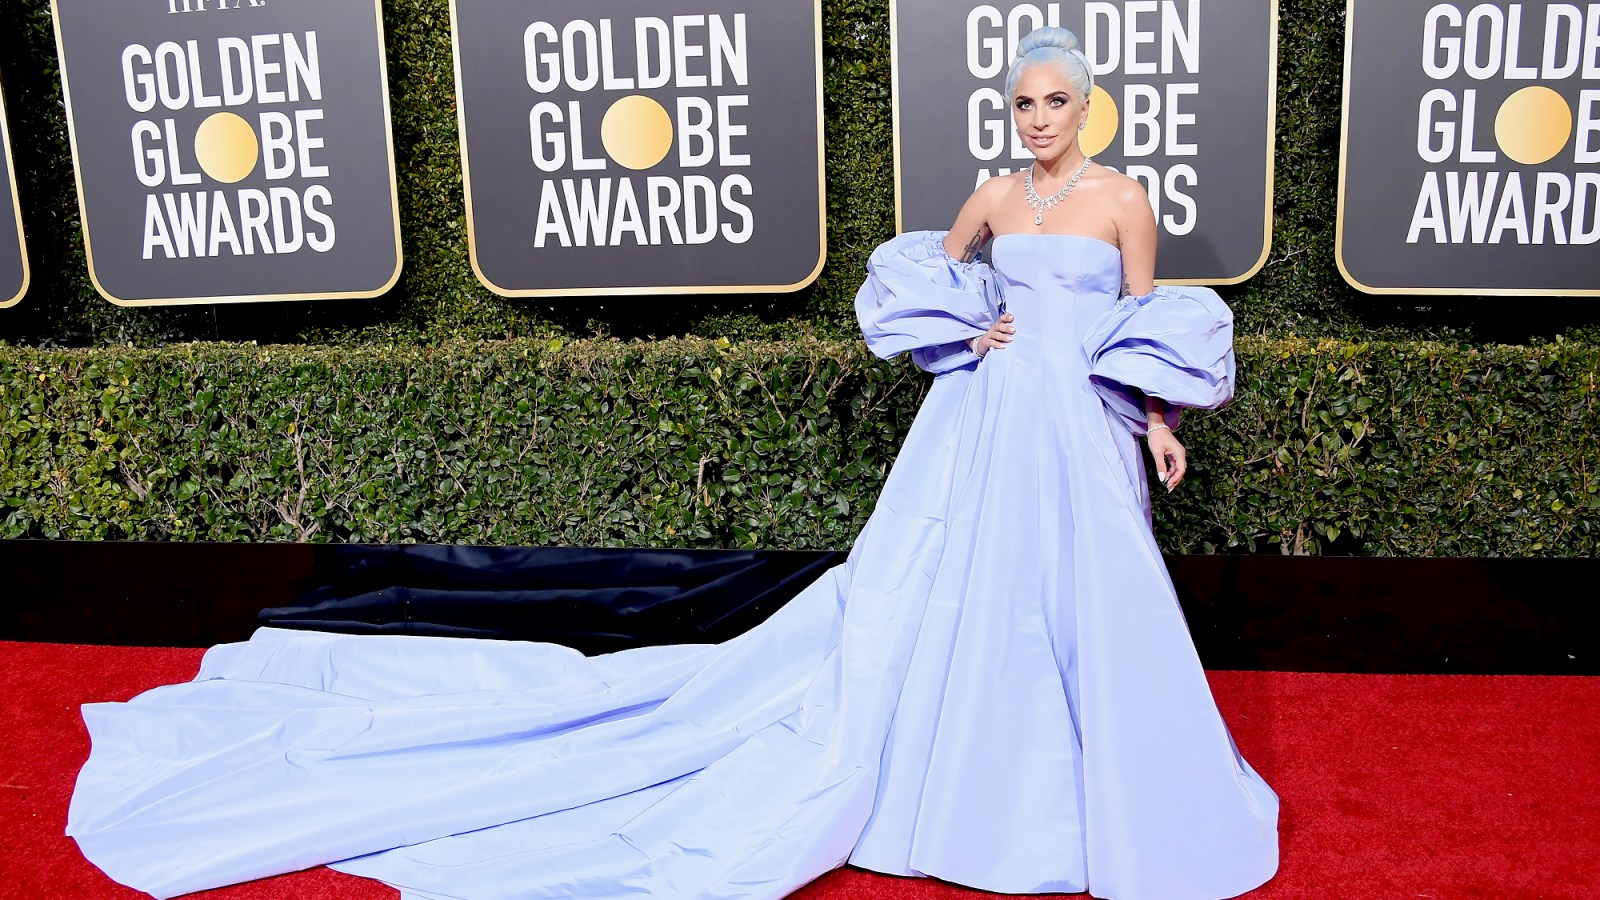 0f8c04fc33b4 Golden Globes 2019 Red Carpet Fashion: See Celeb Dresses, Gowns